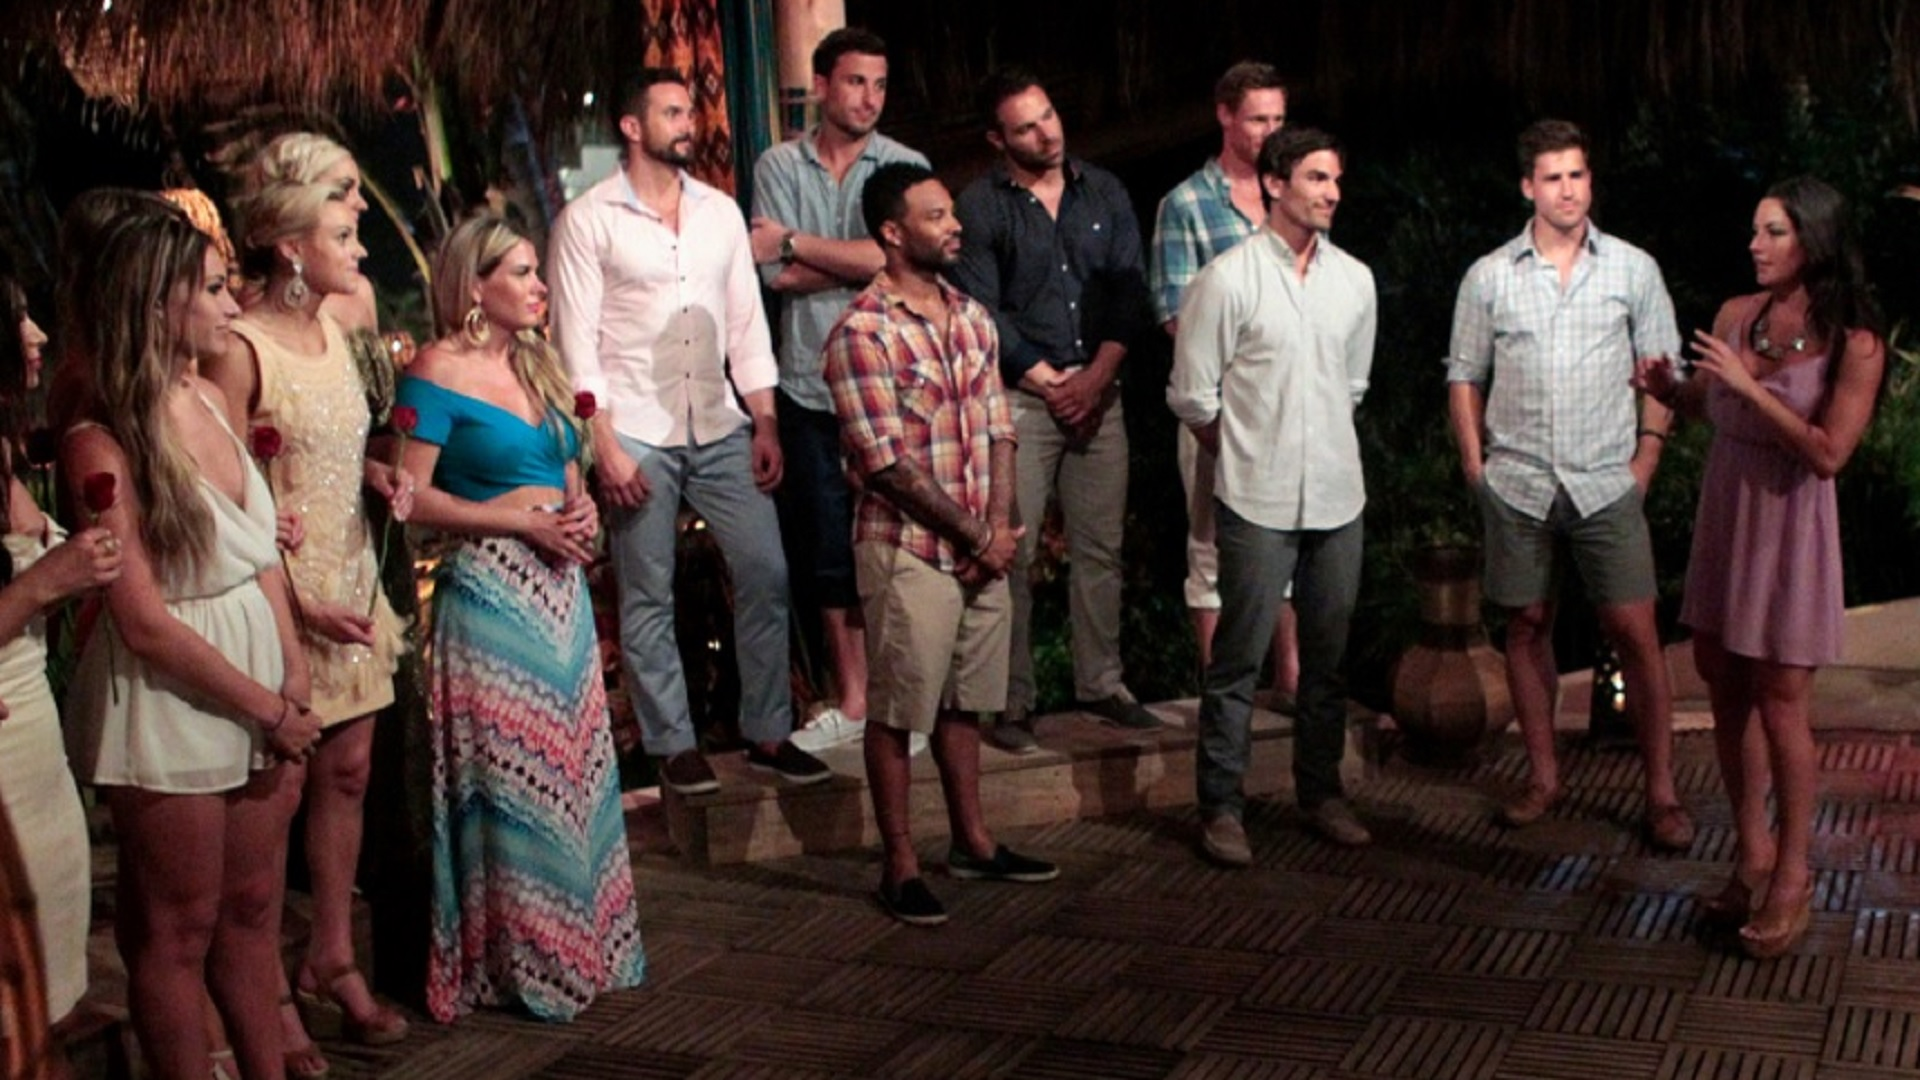 Bachelor in paradise premiere